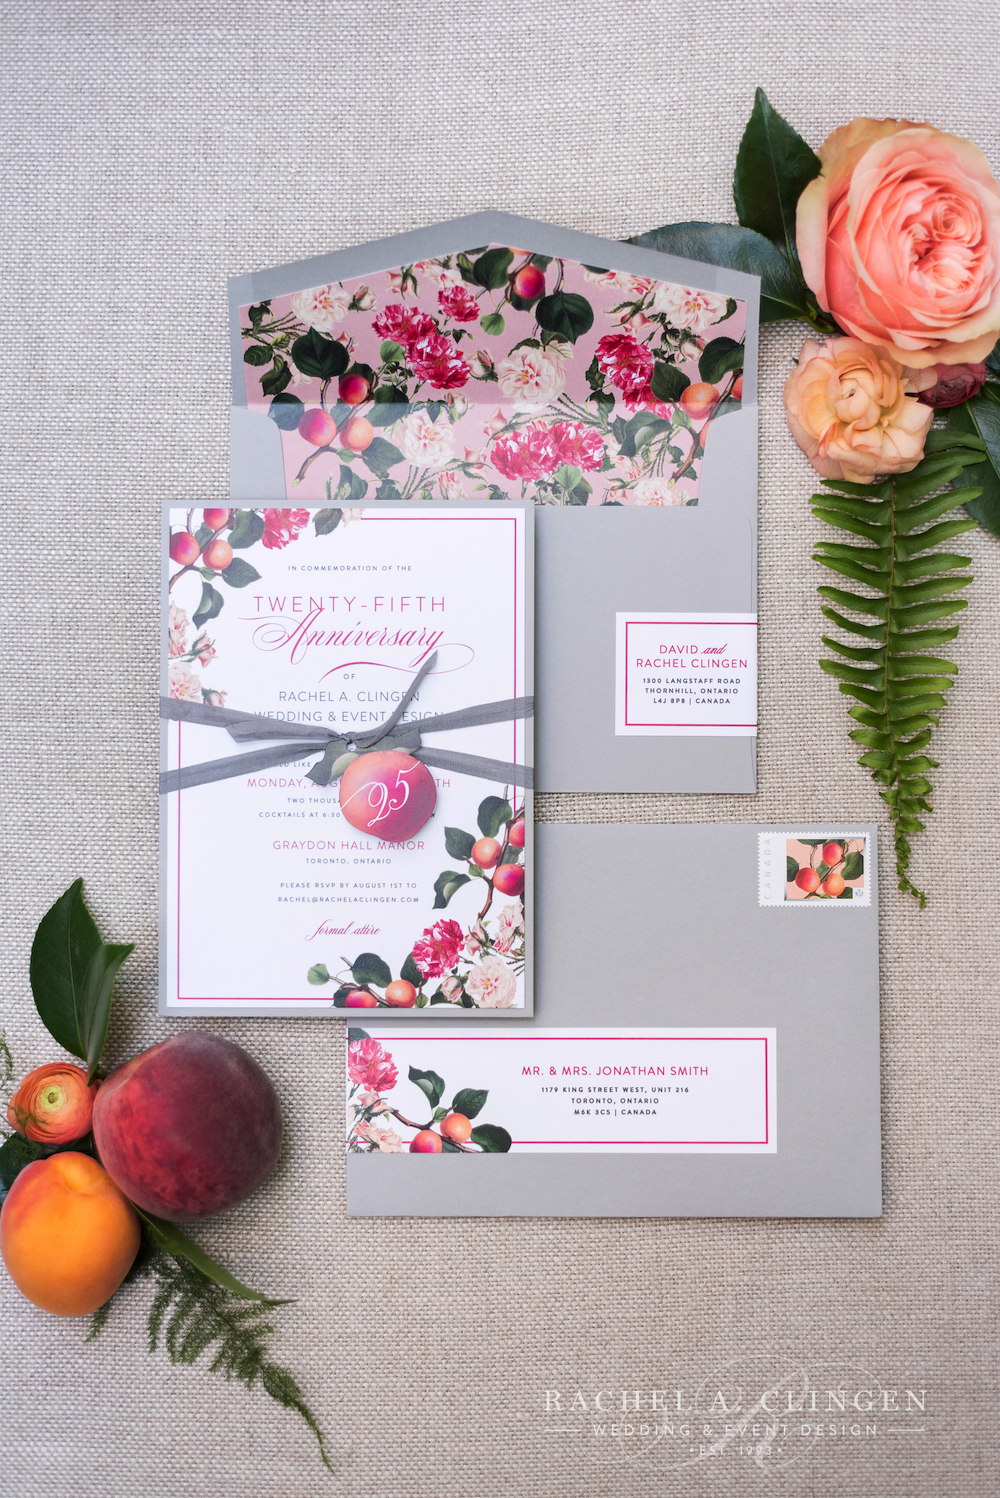 peach-wedding-invitations-toronto - Wedding Decor Toronto Rachel A ...